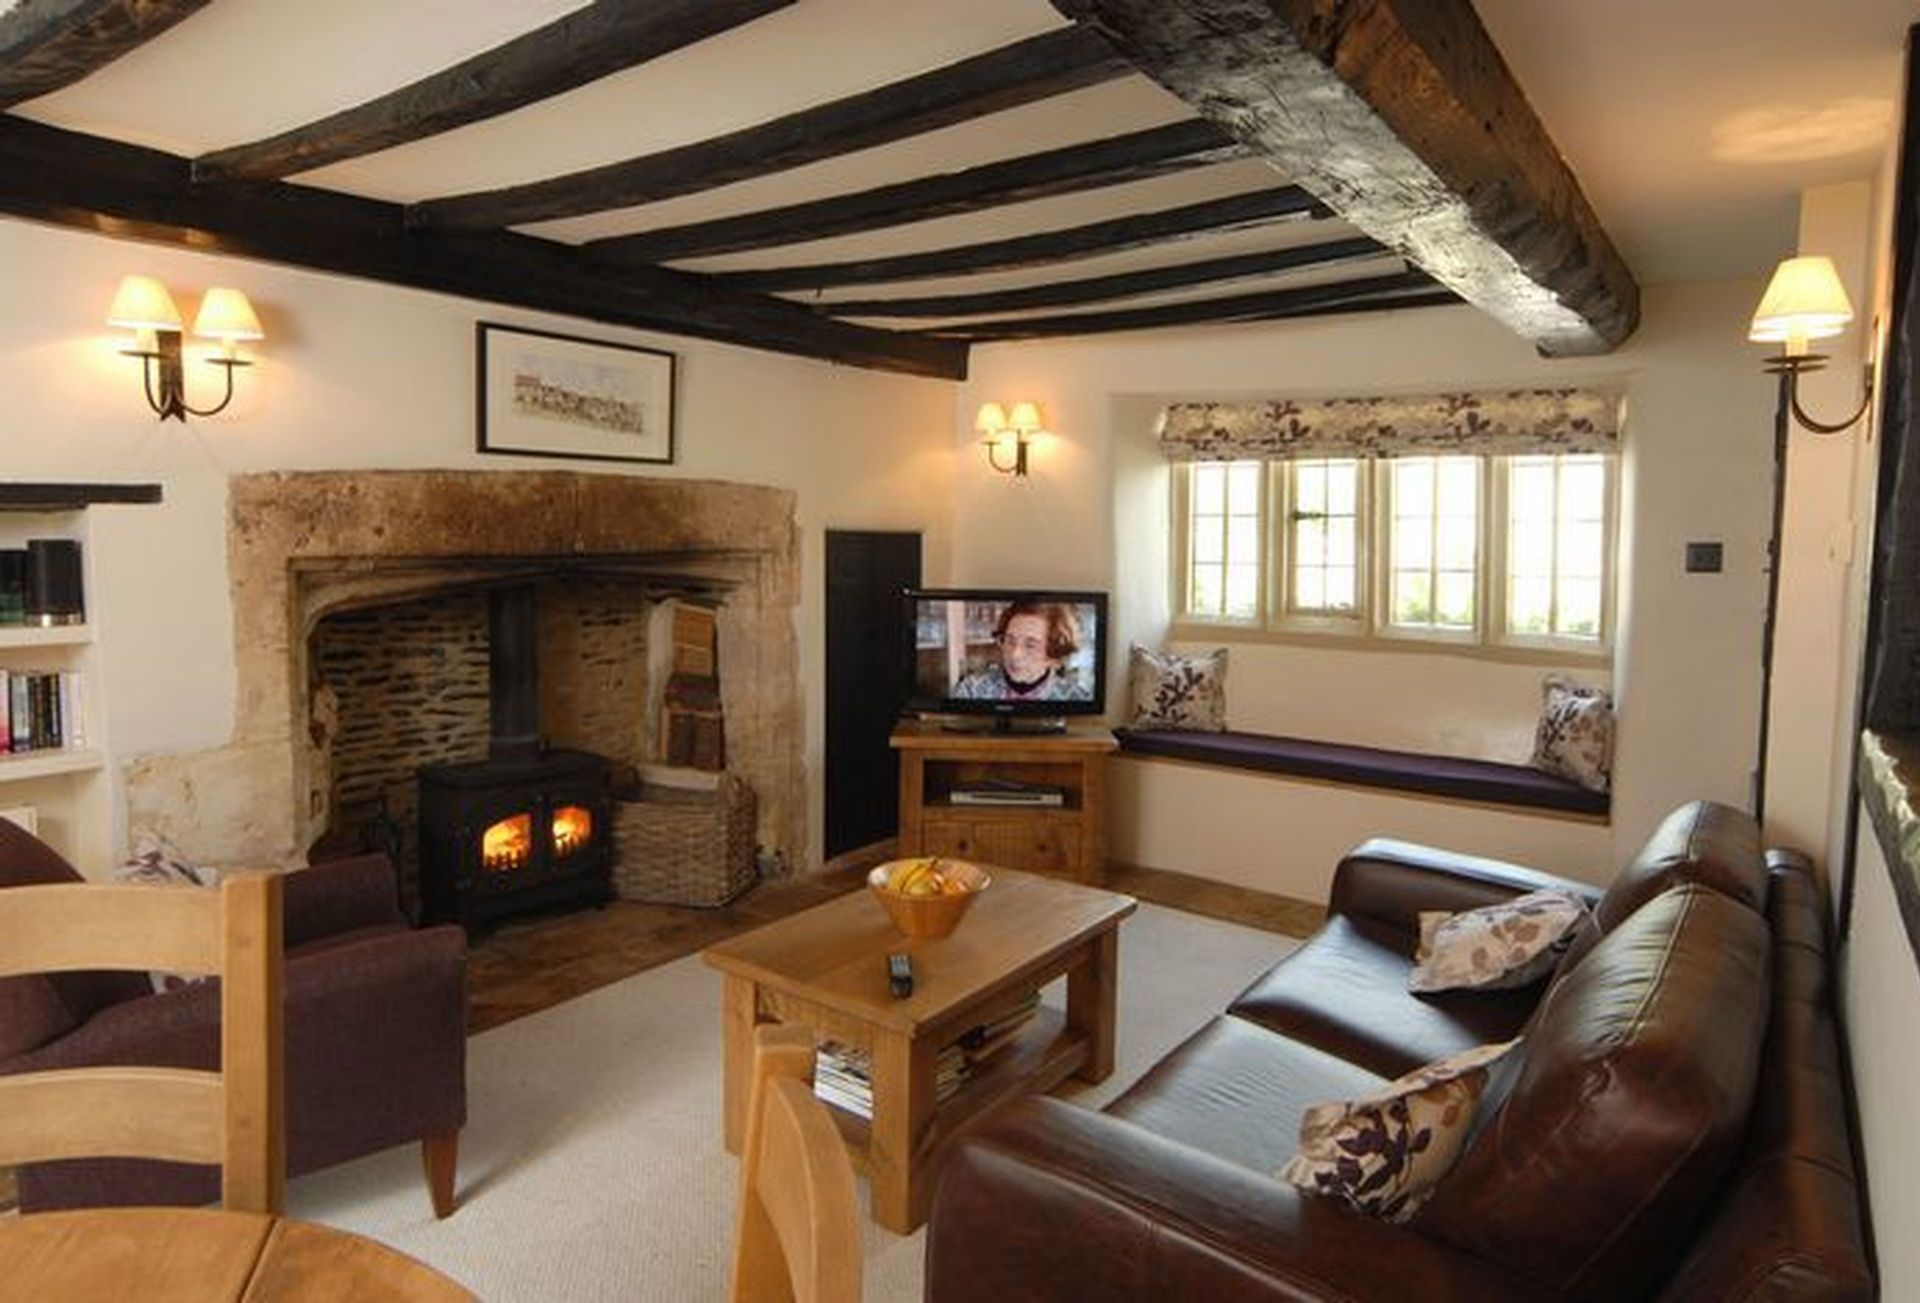 A view of the Sitting Room showing the stone fireplace